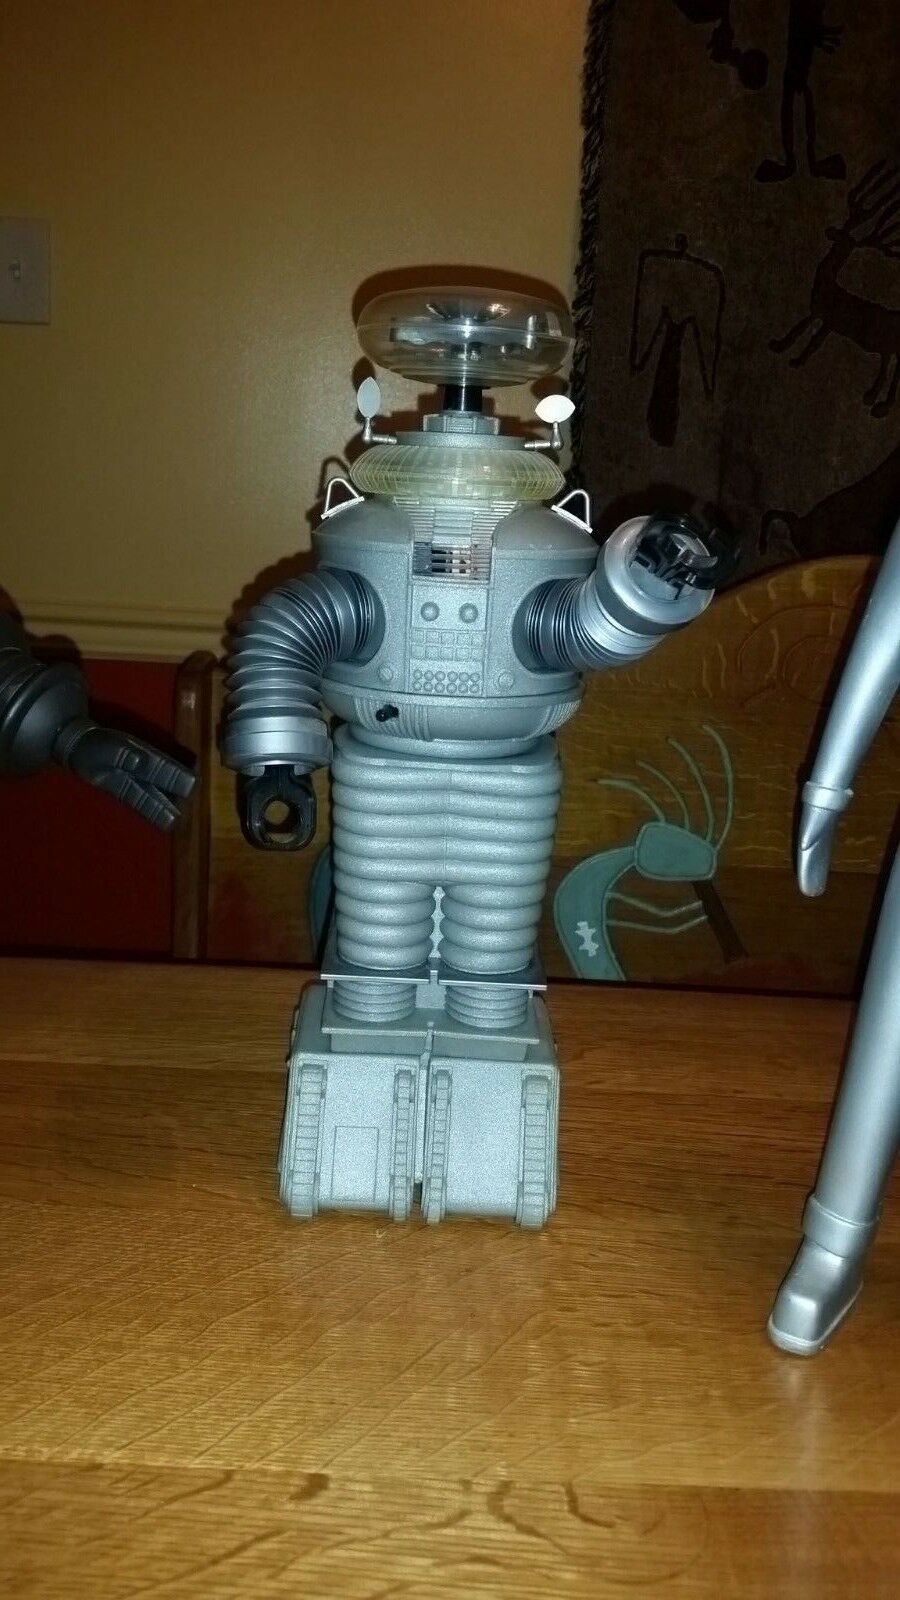 Lost in Space YM-3 Robot by Masudaya Collectible Toy